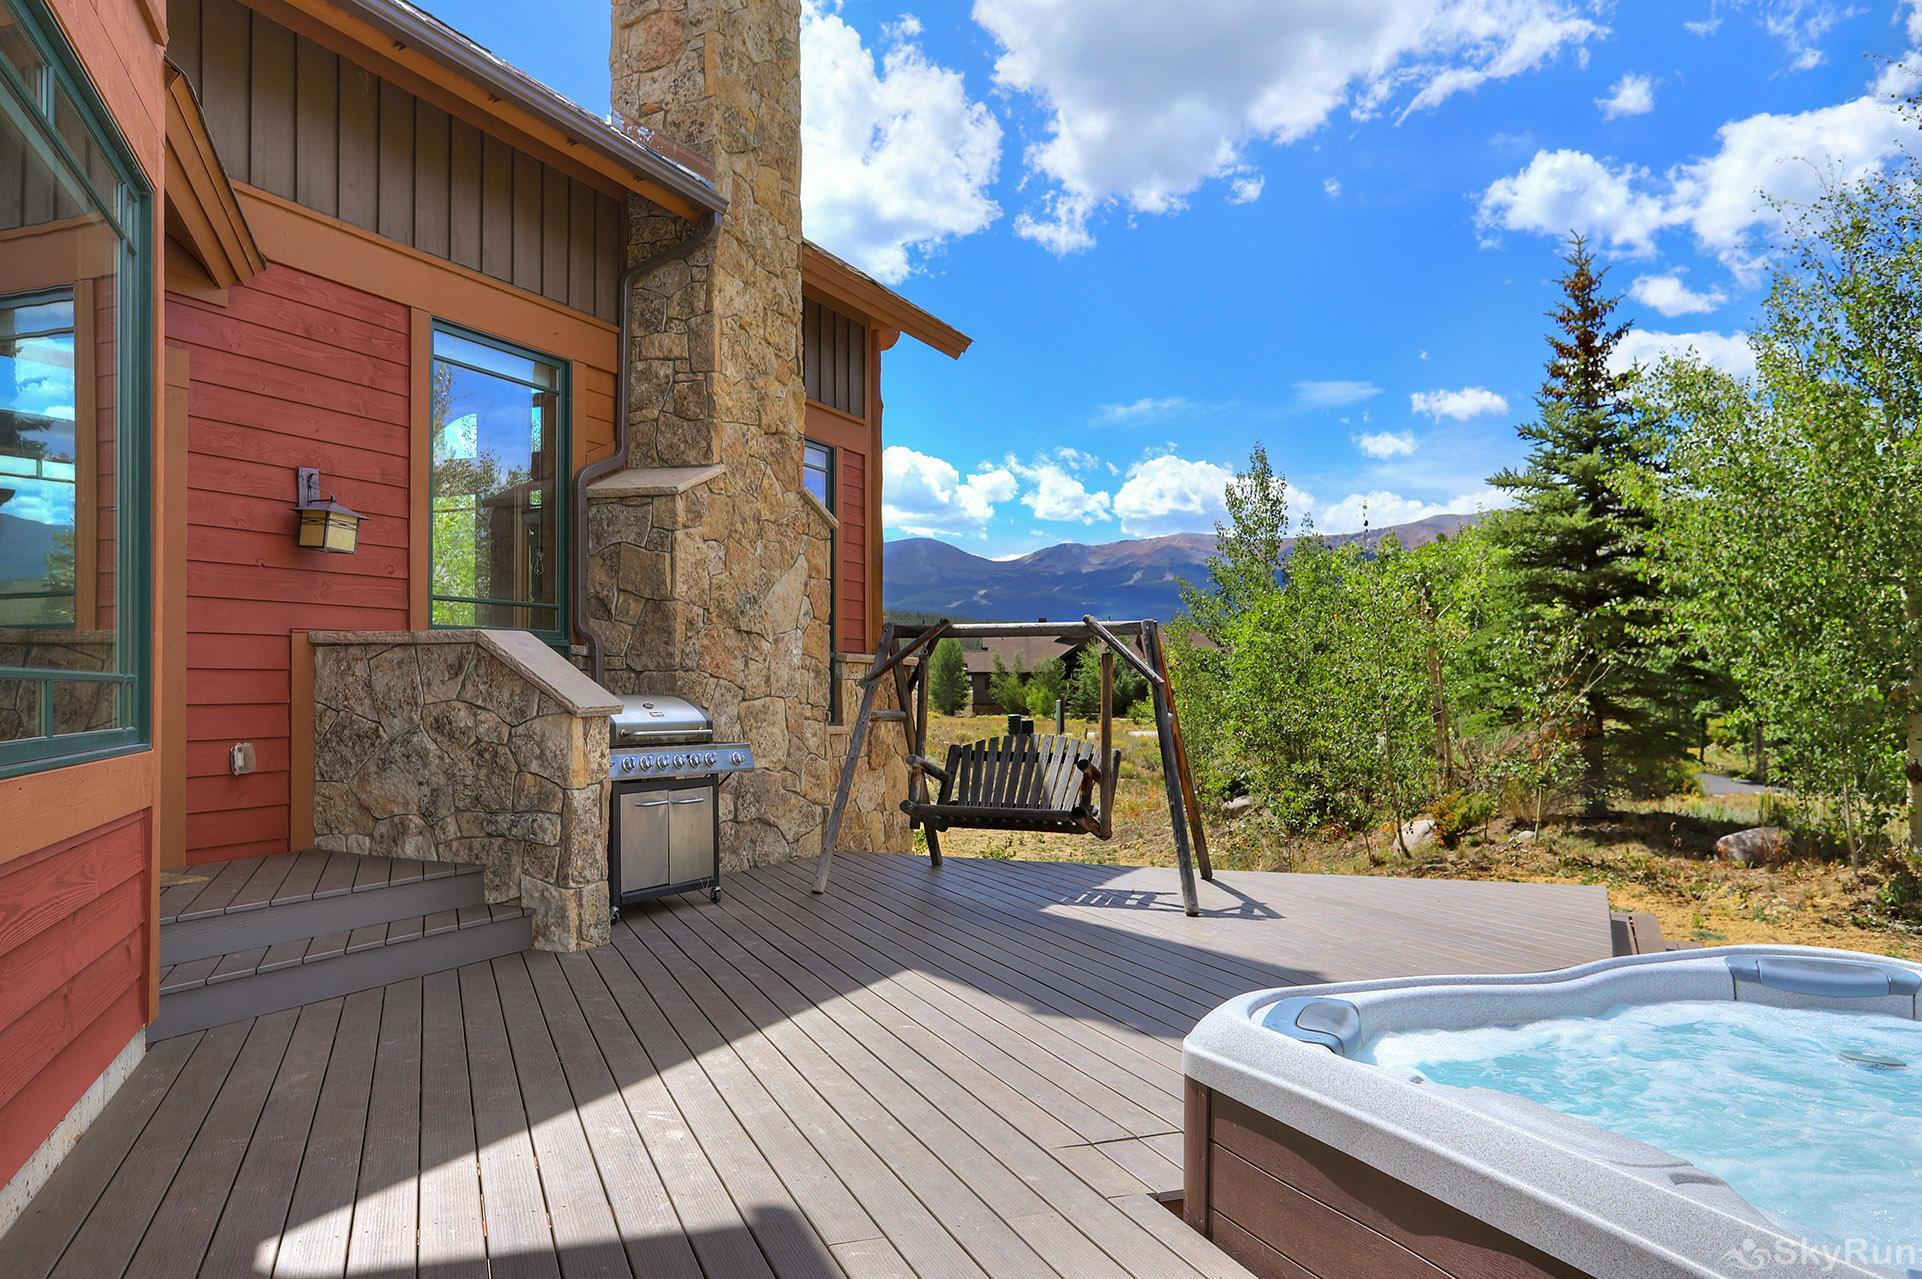 Buffalo Lodge Private outdoor patio with hot tub and propane grill